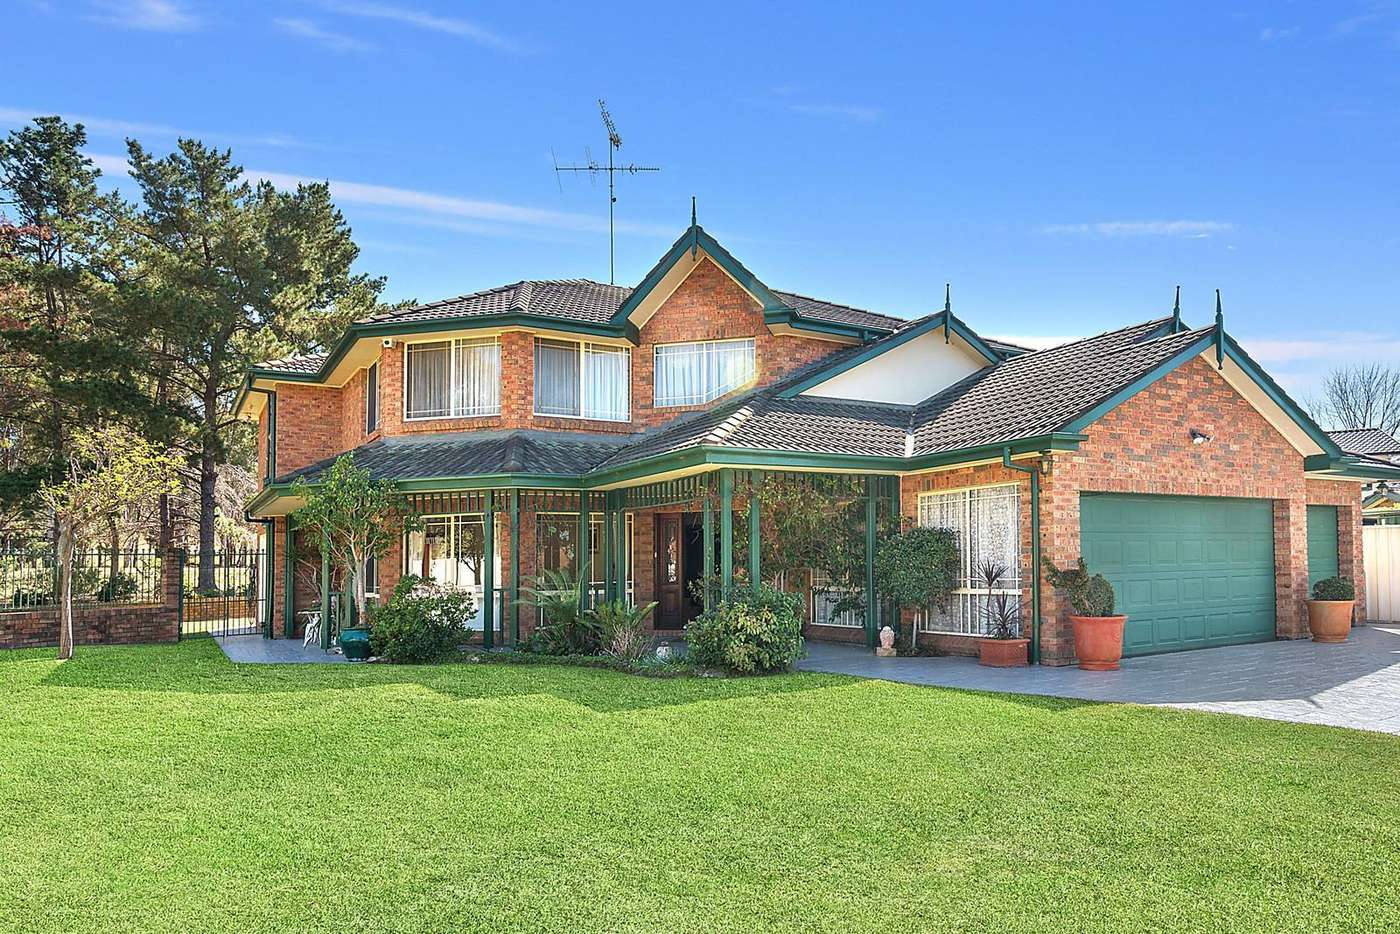 Main view of Homely house listing, 26 Roony Avenue, Abbotsbury NSW 2176